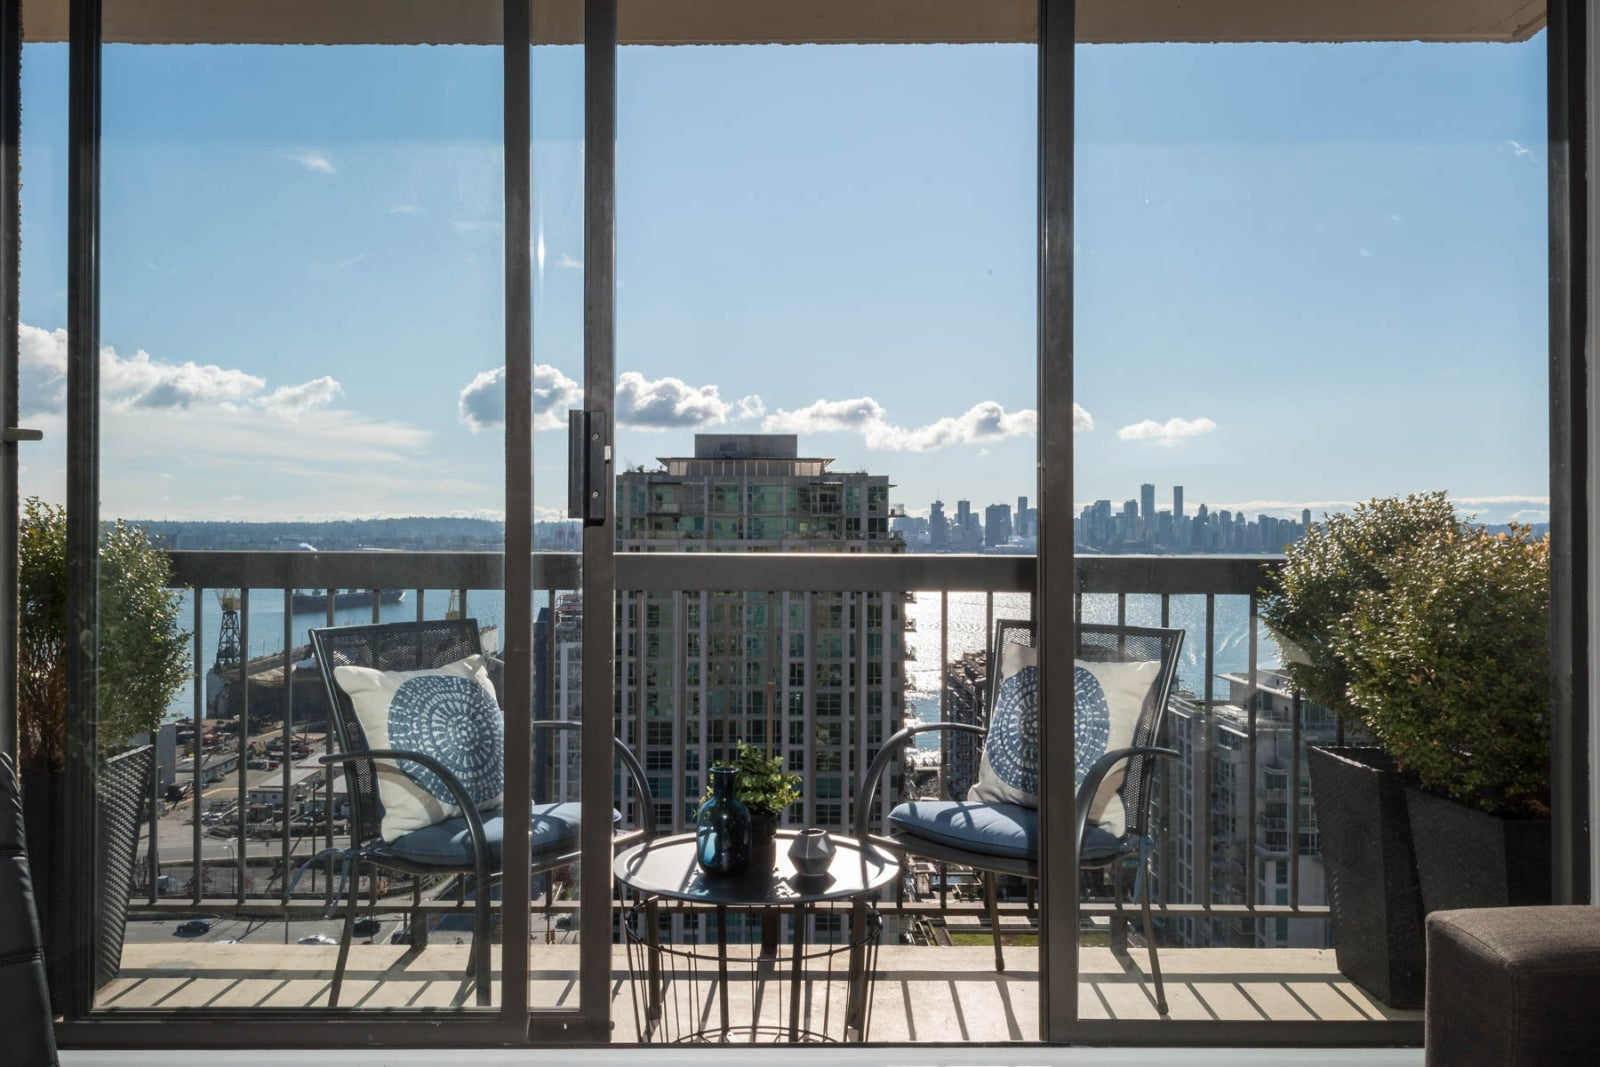 1601 145 ST GEORGES AVENUE - Lower Lonsdale Apartment/Condo for sale, 1 Bedroom (R2244405) #10